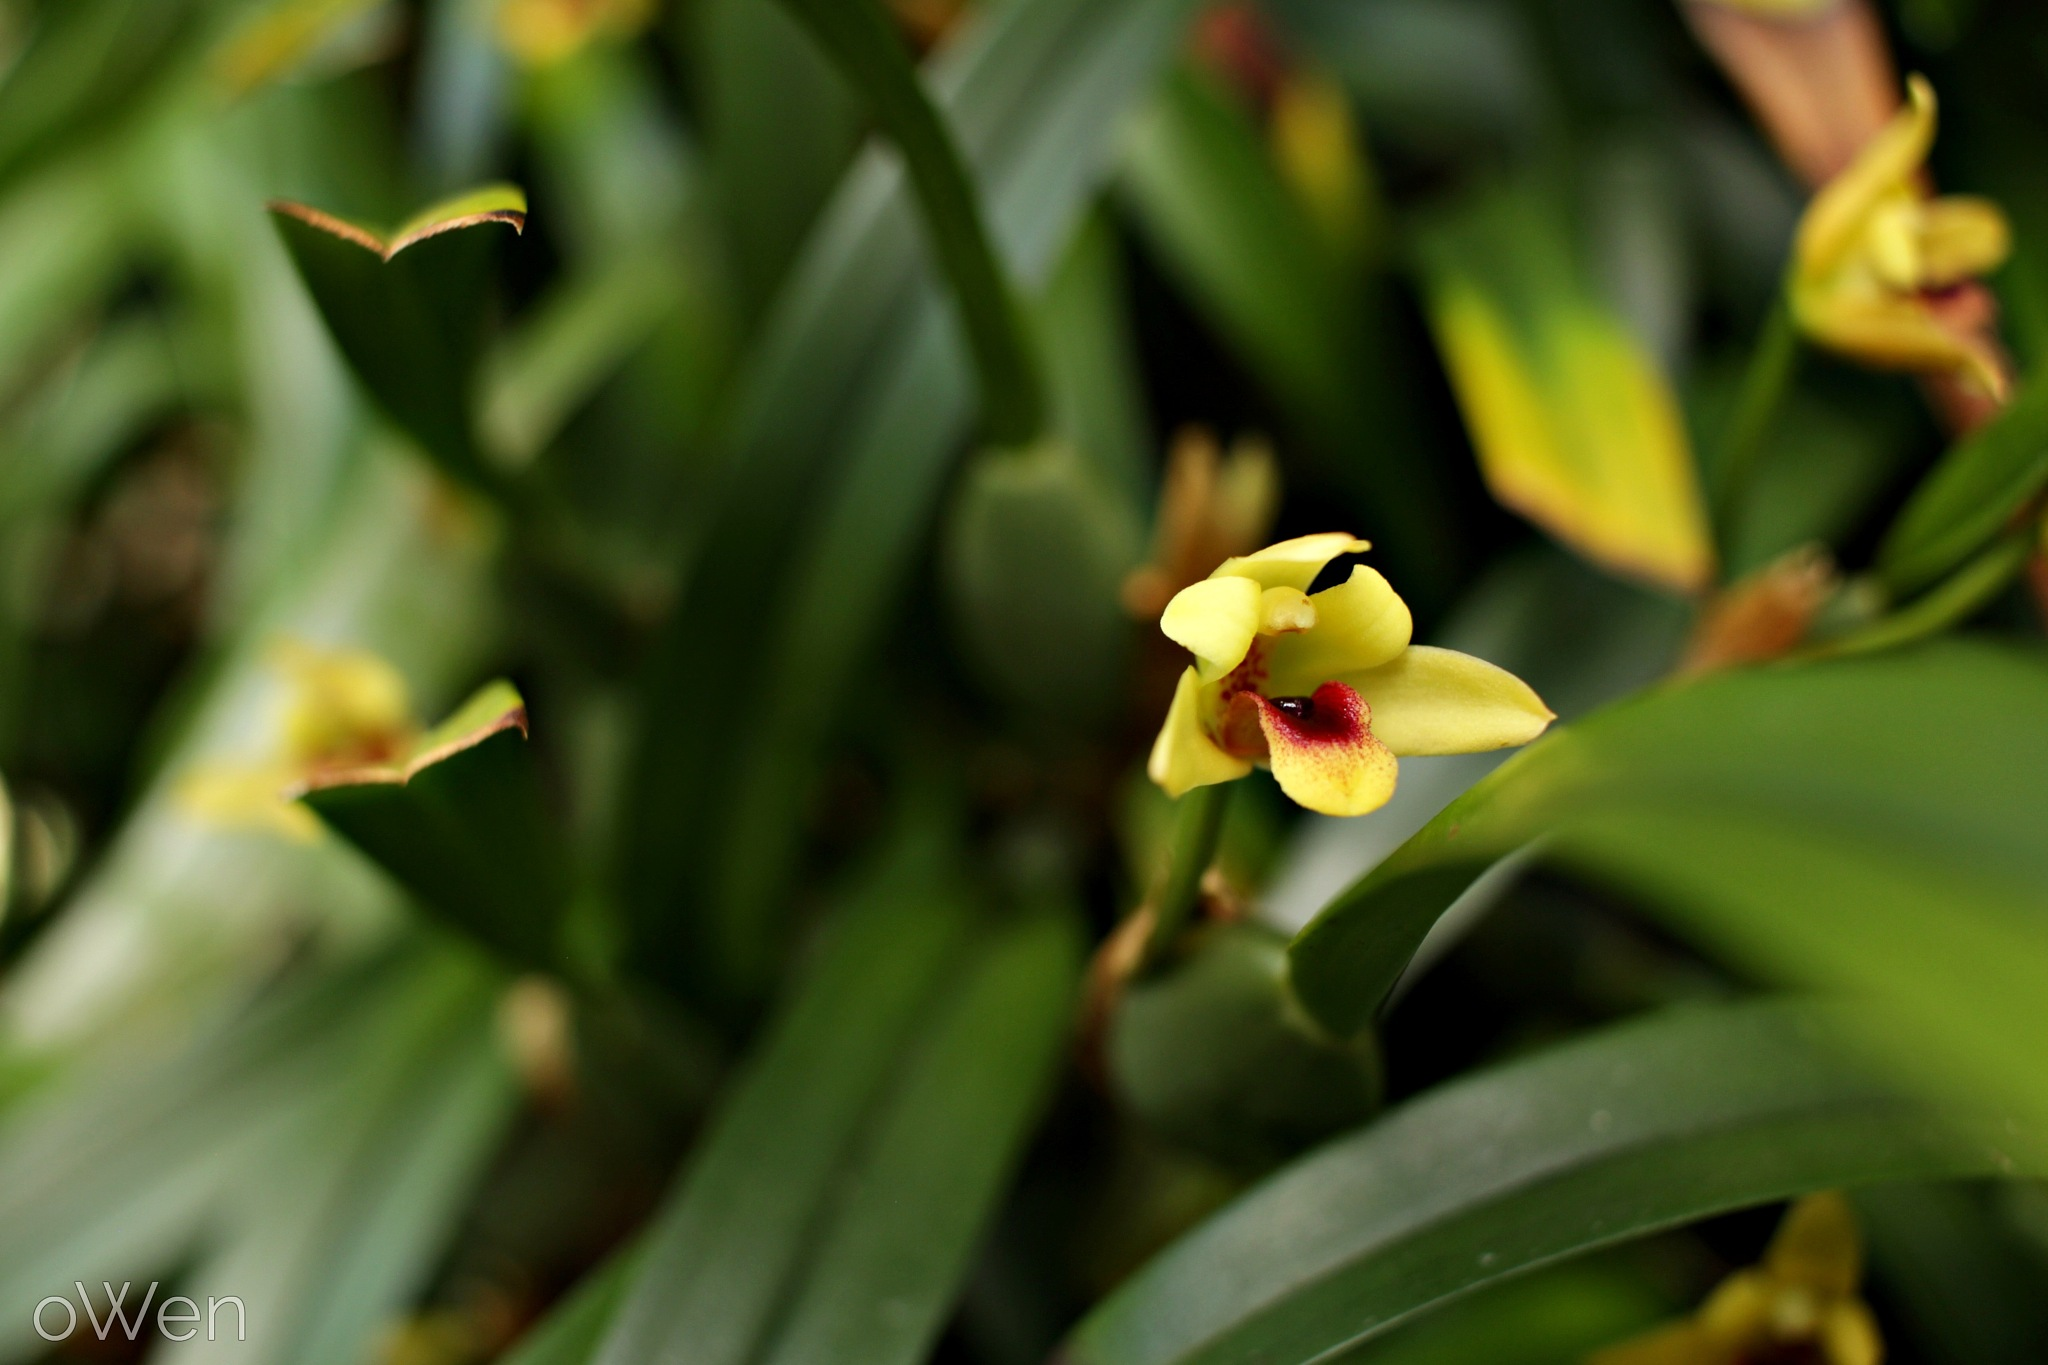 Small Yellow Flowers by Blane Owen